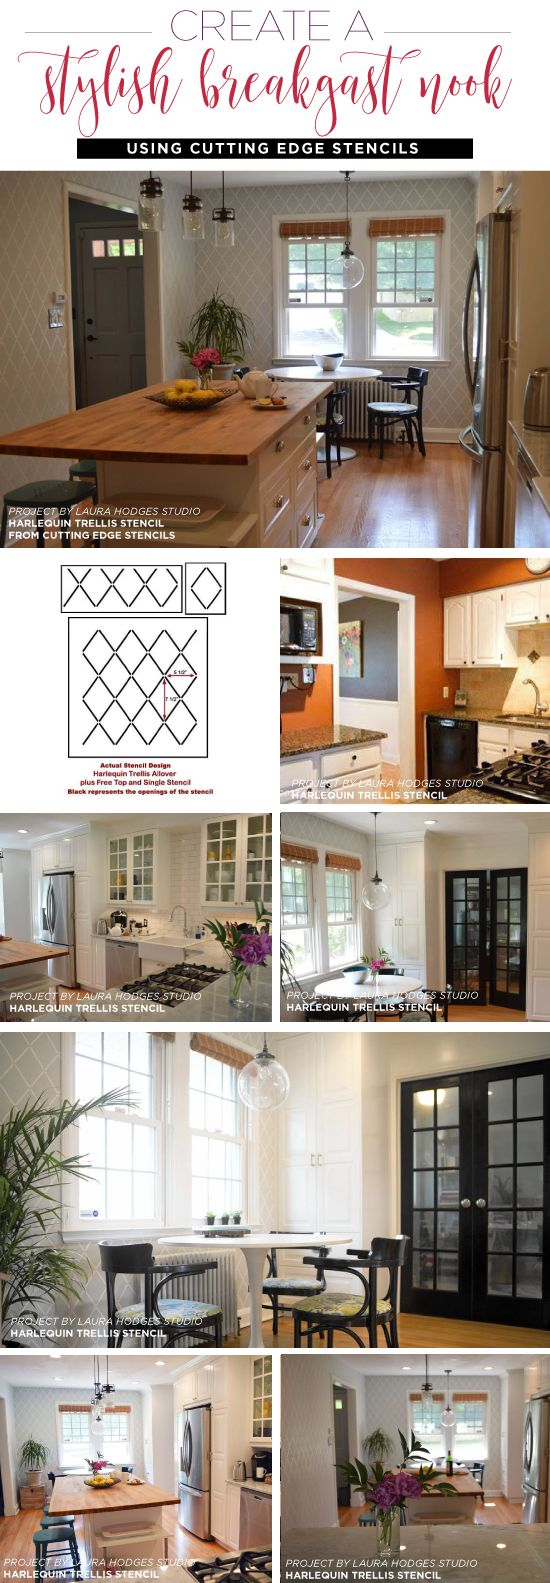 669 best Kitchen images on Pinterest | Farmhouse cabinets, Chairs ...